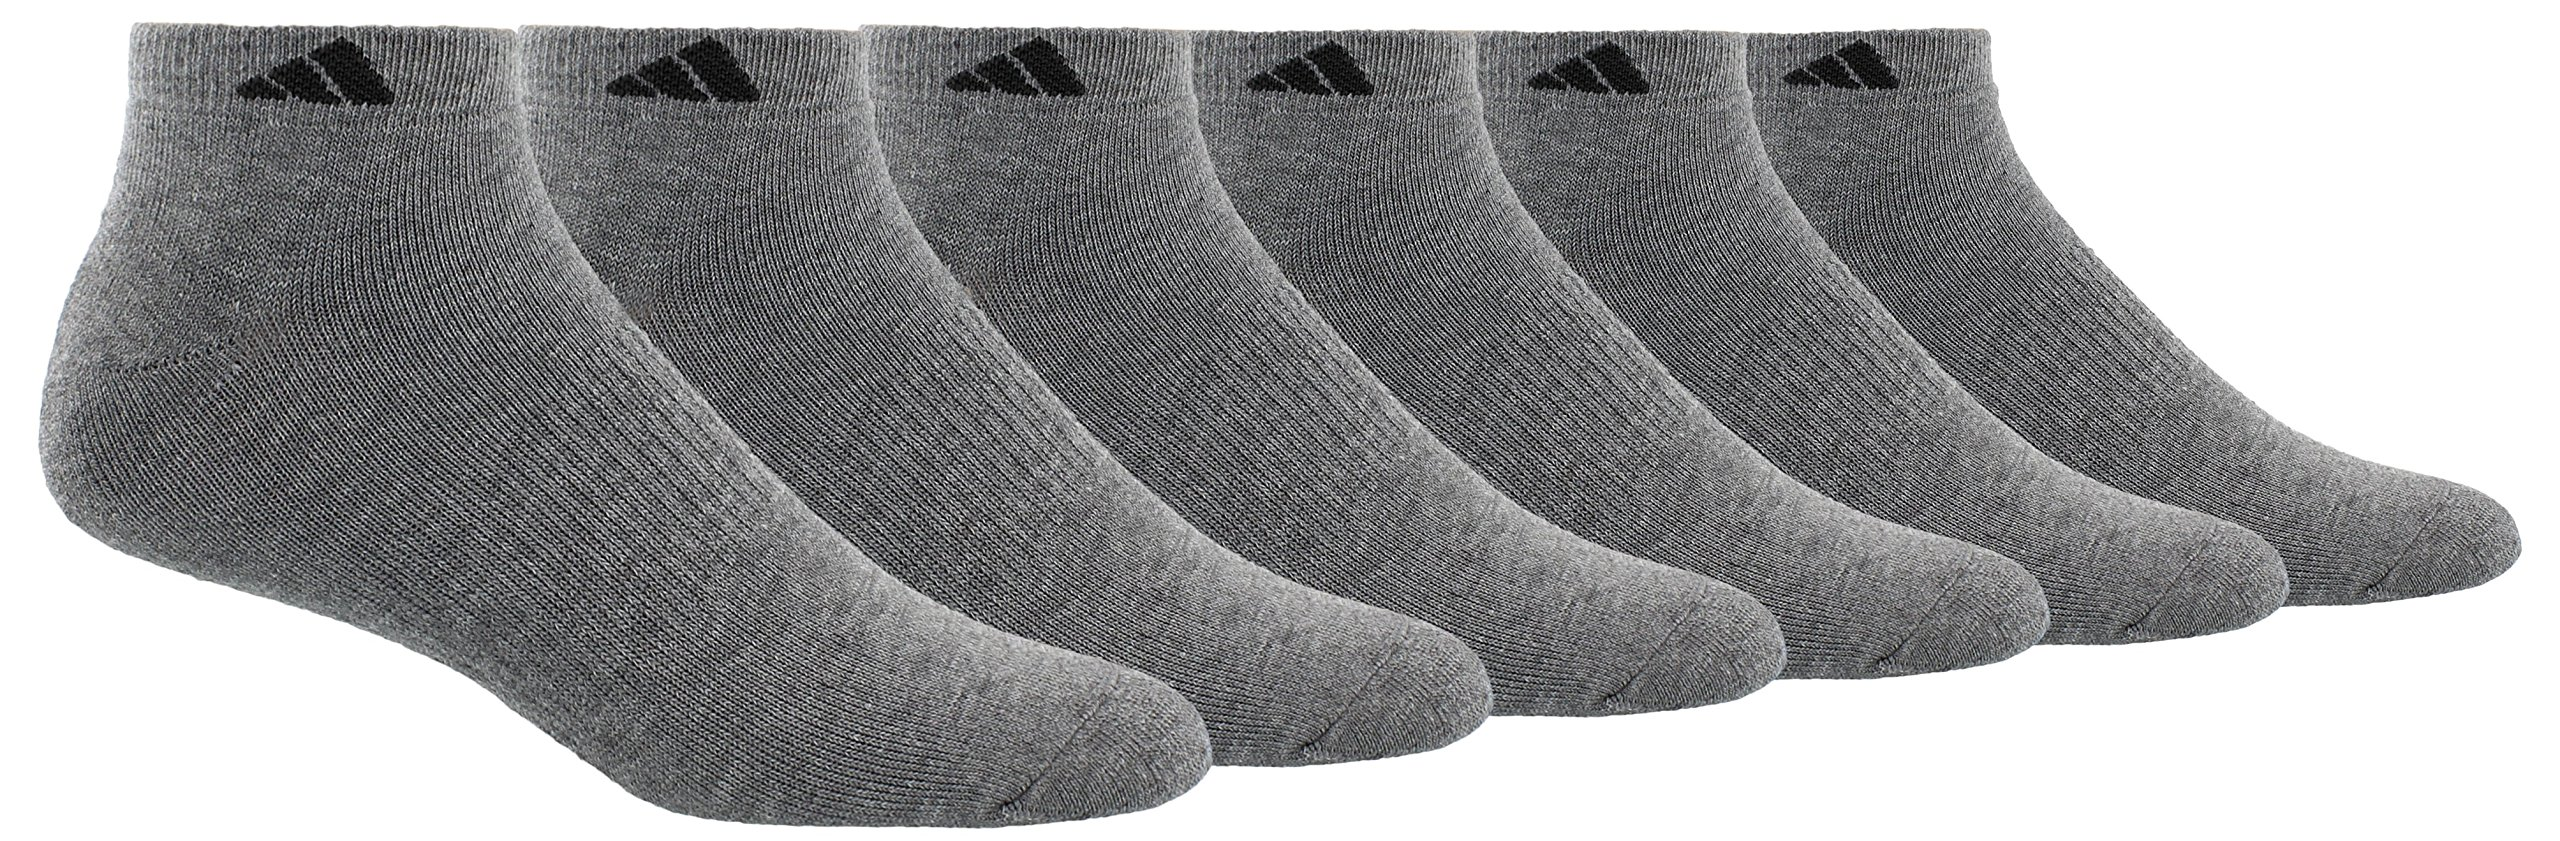 adidas Men's Athletic Cushioned Low Cut Socks (6-Pair), Heather Grey/Black, Large, (Shoe Size 6-12) by adidas